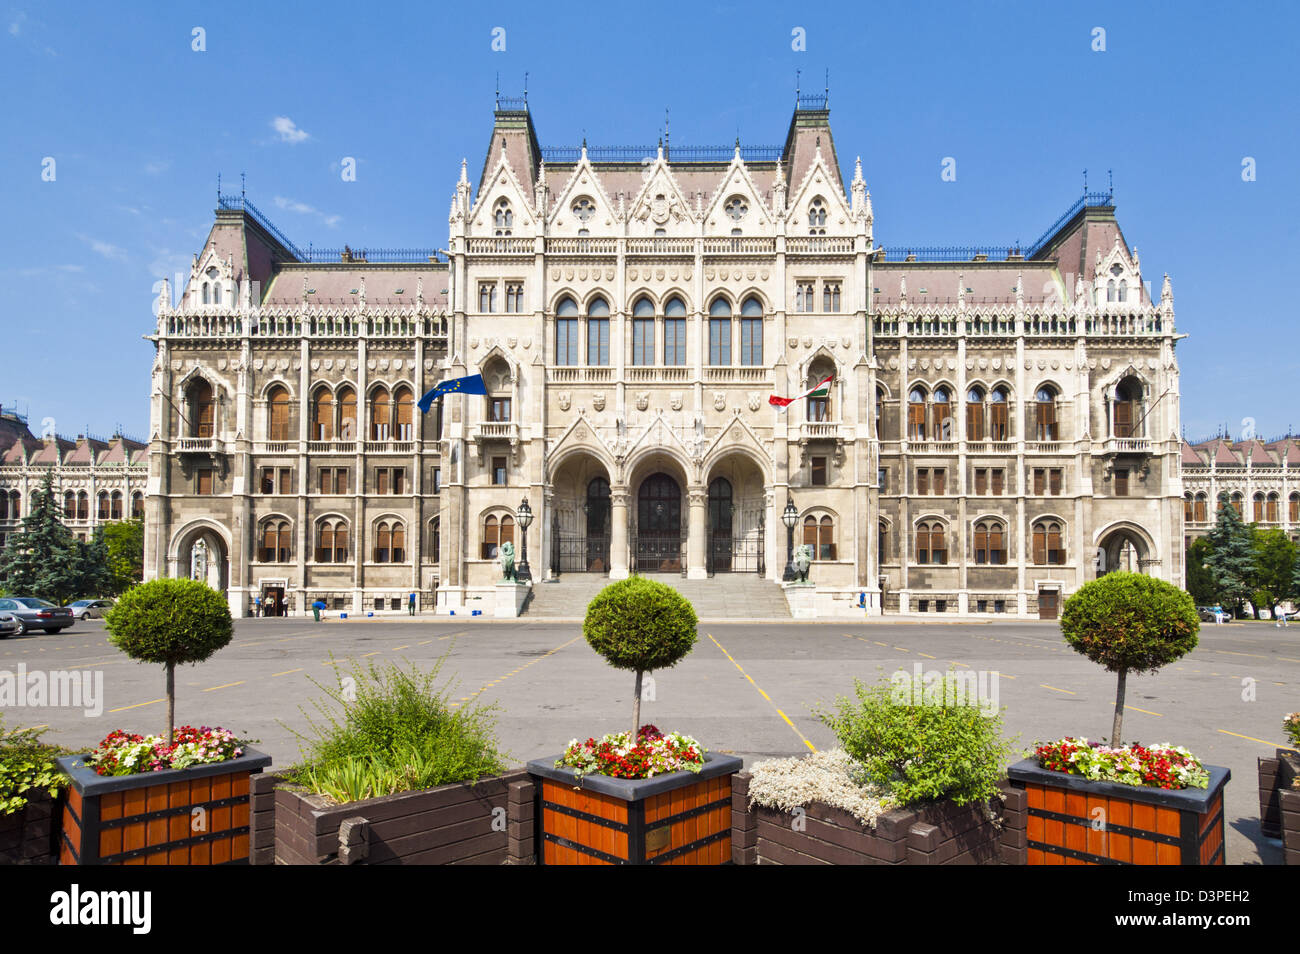 The neo-gothic Hungarian Parliament building entrance designed by Imre Steindl, Budapest, Hungary, Europe, EU - Stock Image